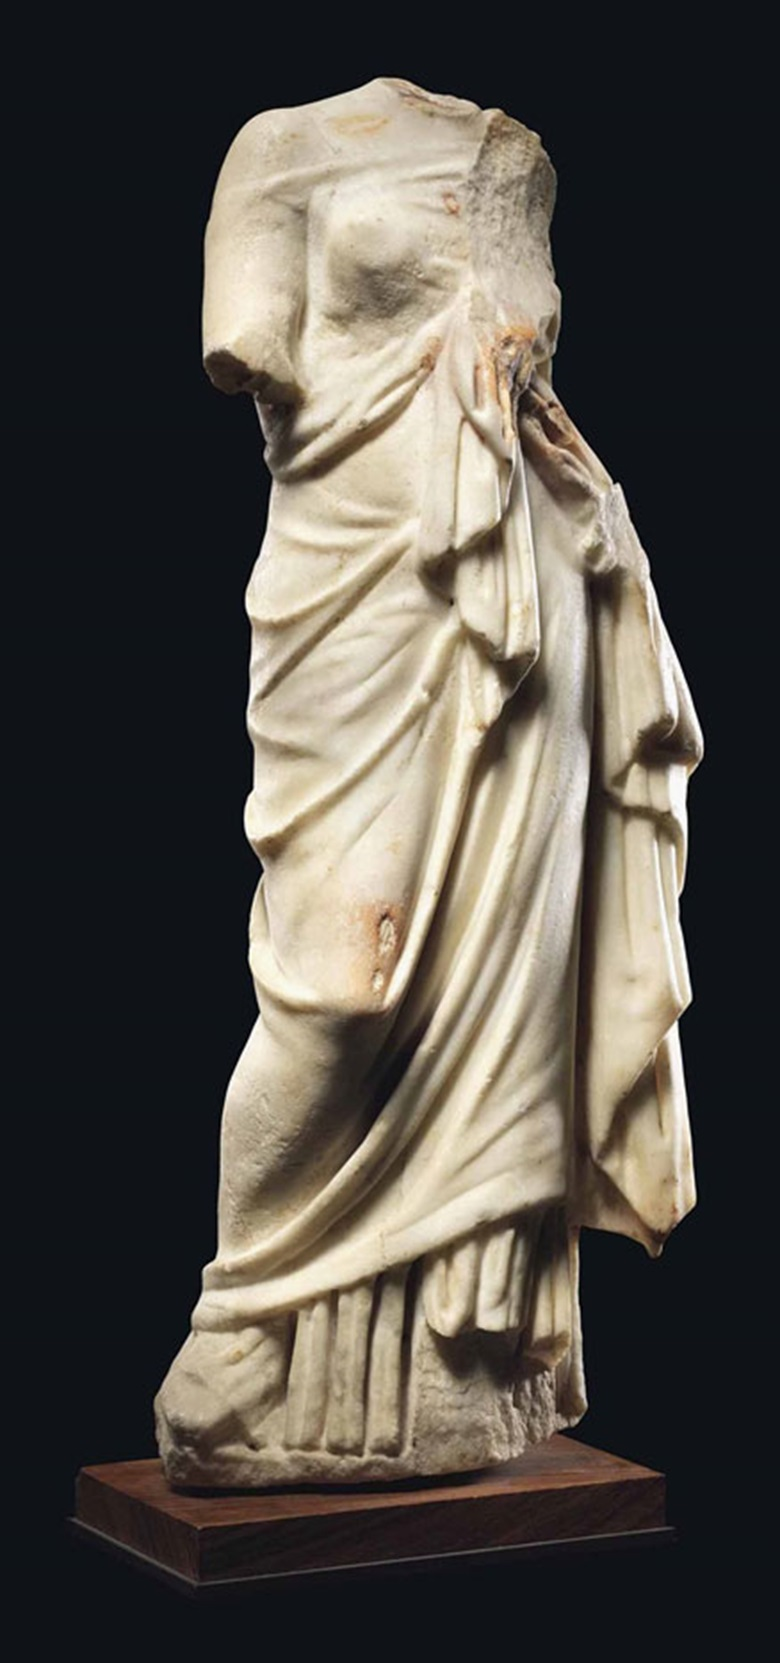 A Roman marble goddess, circa 2nd-3rd century AD. 22 in (56 cm) high. This lot was offered in Antiquities on 6 July 2016 at Christie's in London, King Street and sold for £18,750